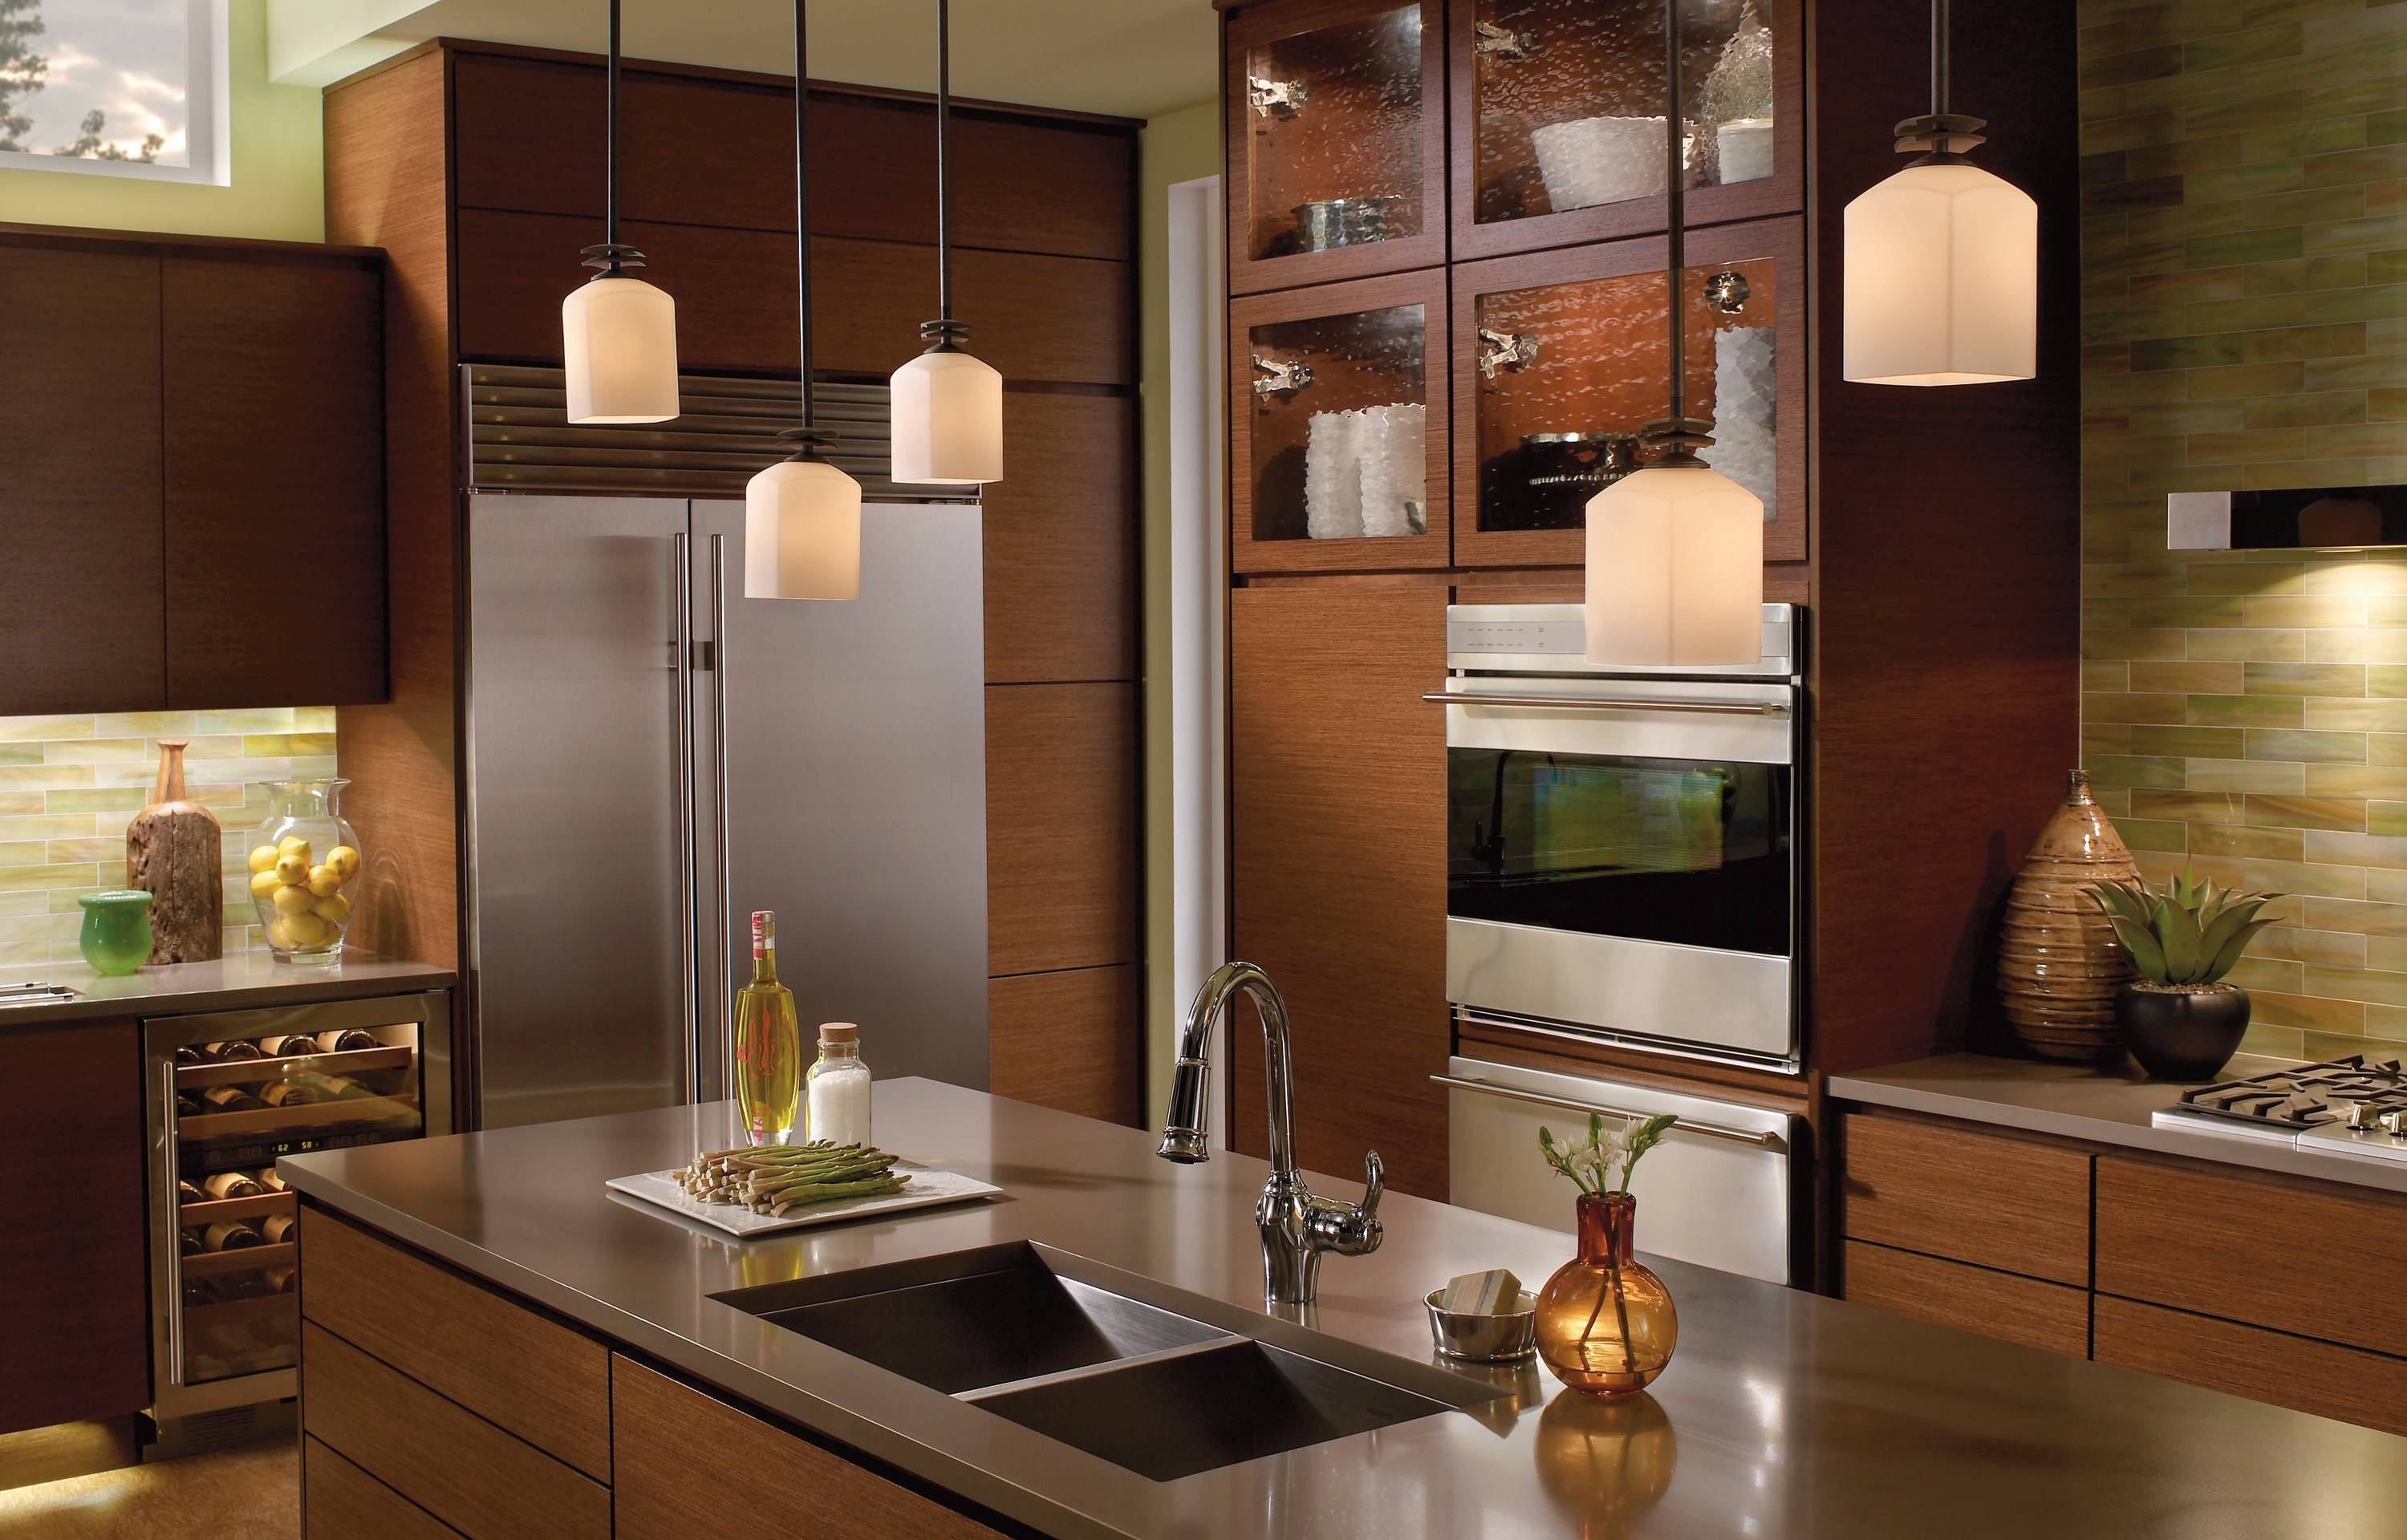 Mini Pendant Lights Over Kitchen Island – Aneilve with Mini Lights Pendant for Kitchen Island (Image 11 of 15)